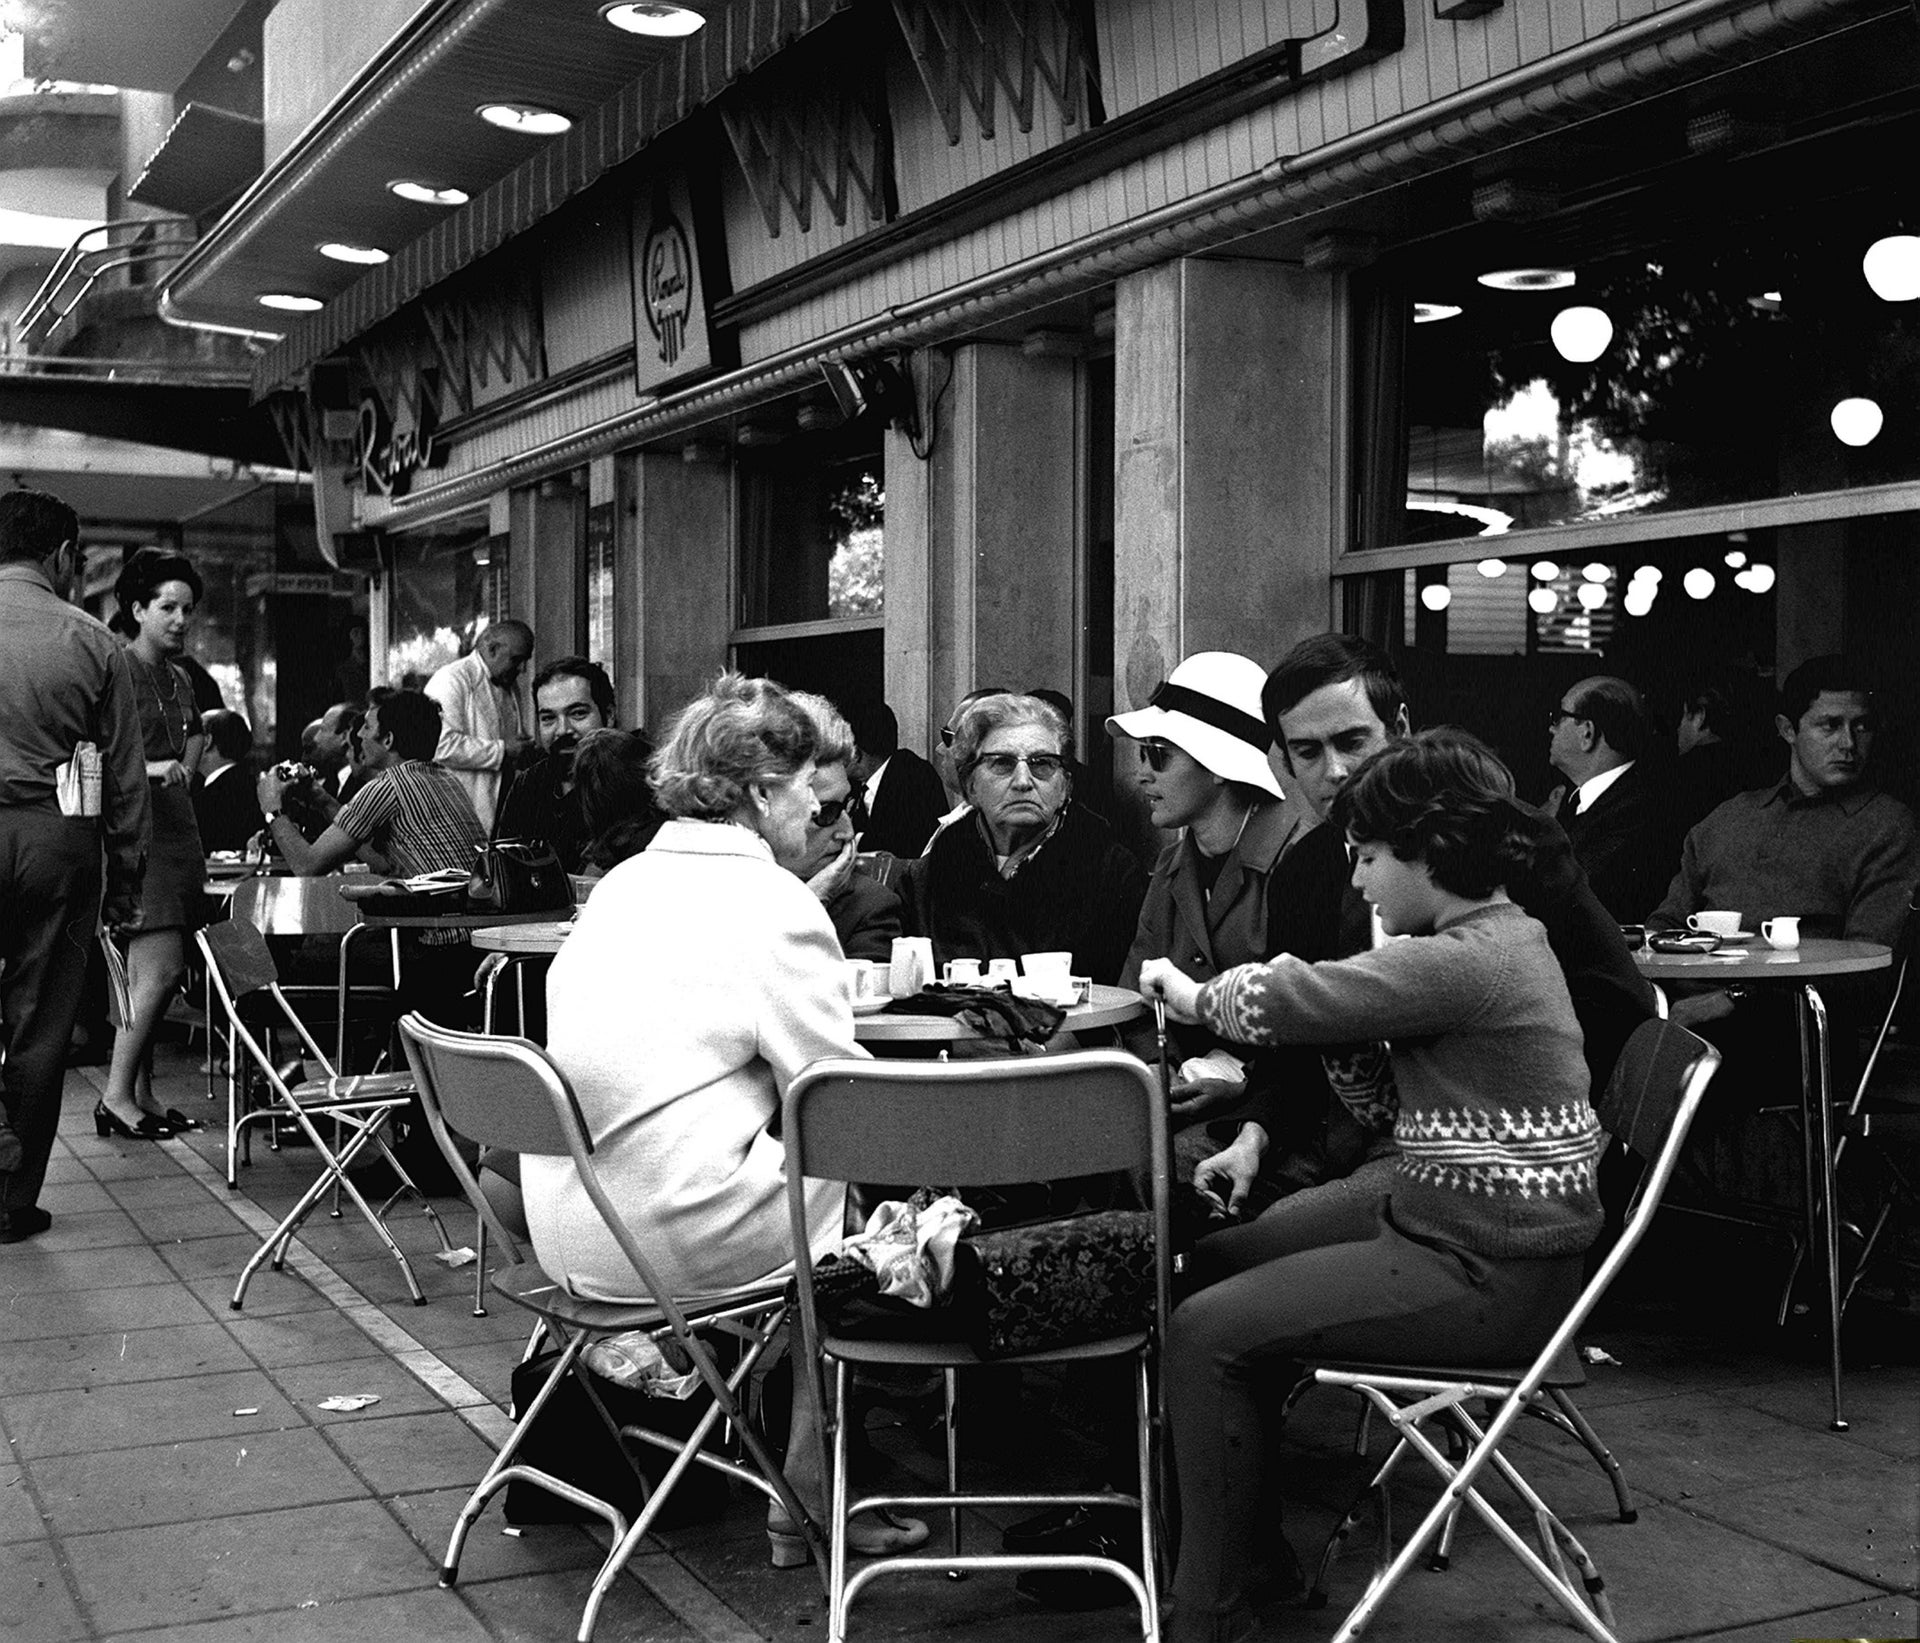 A Tel Aviv outdoor cafe in the late '60s.